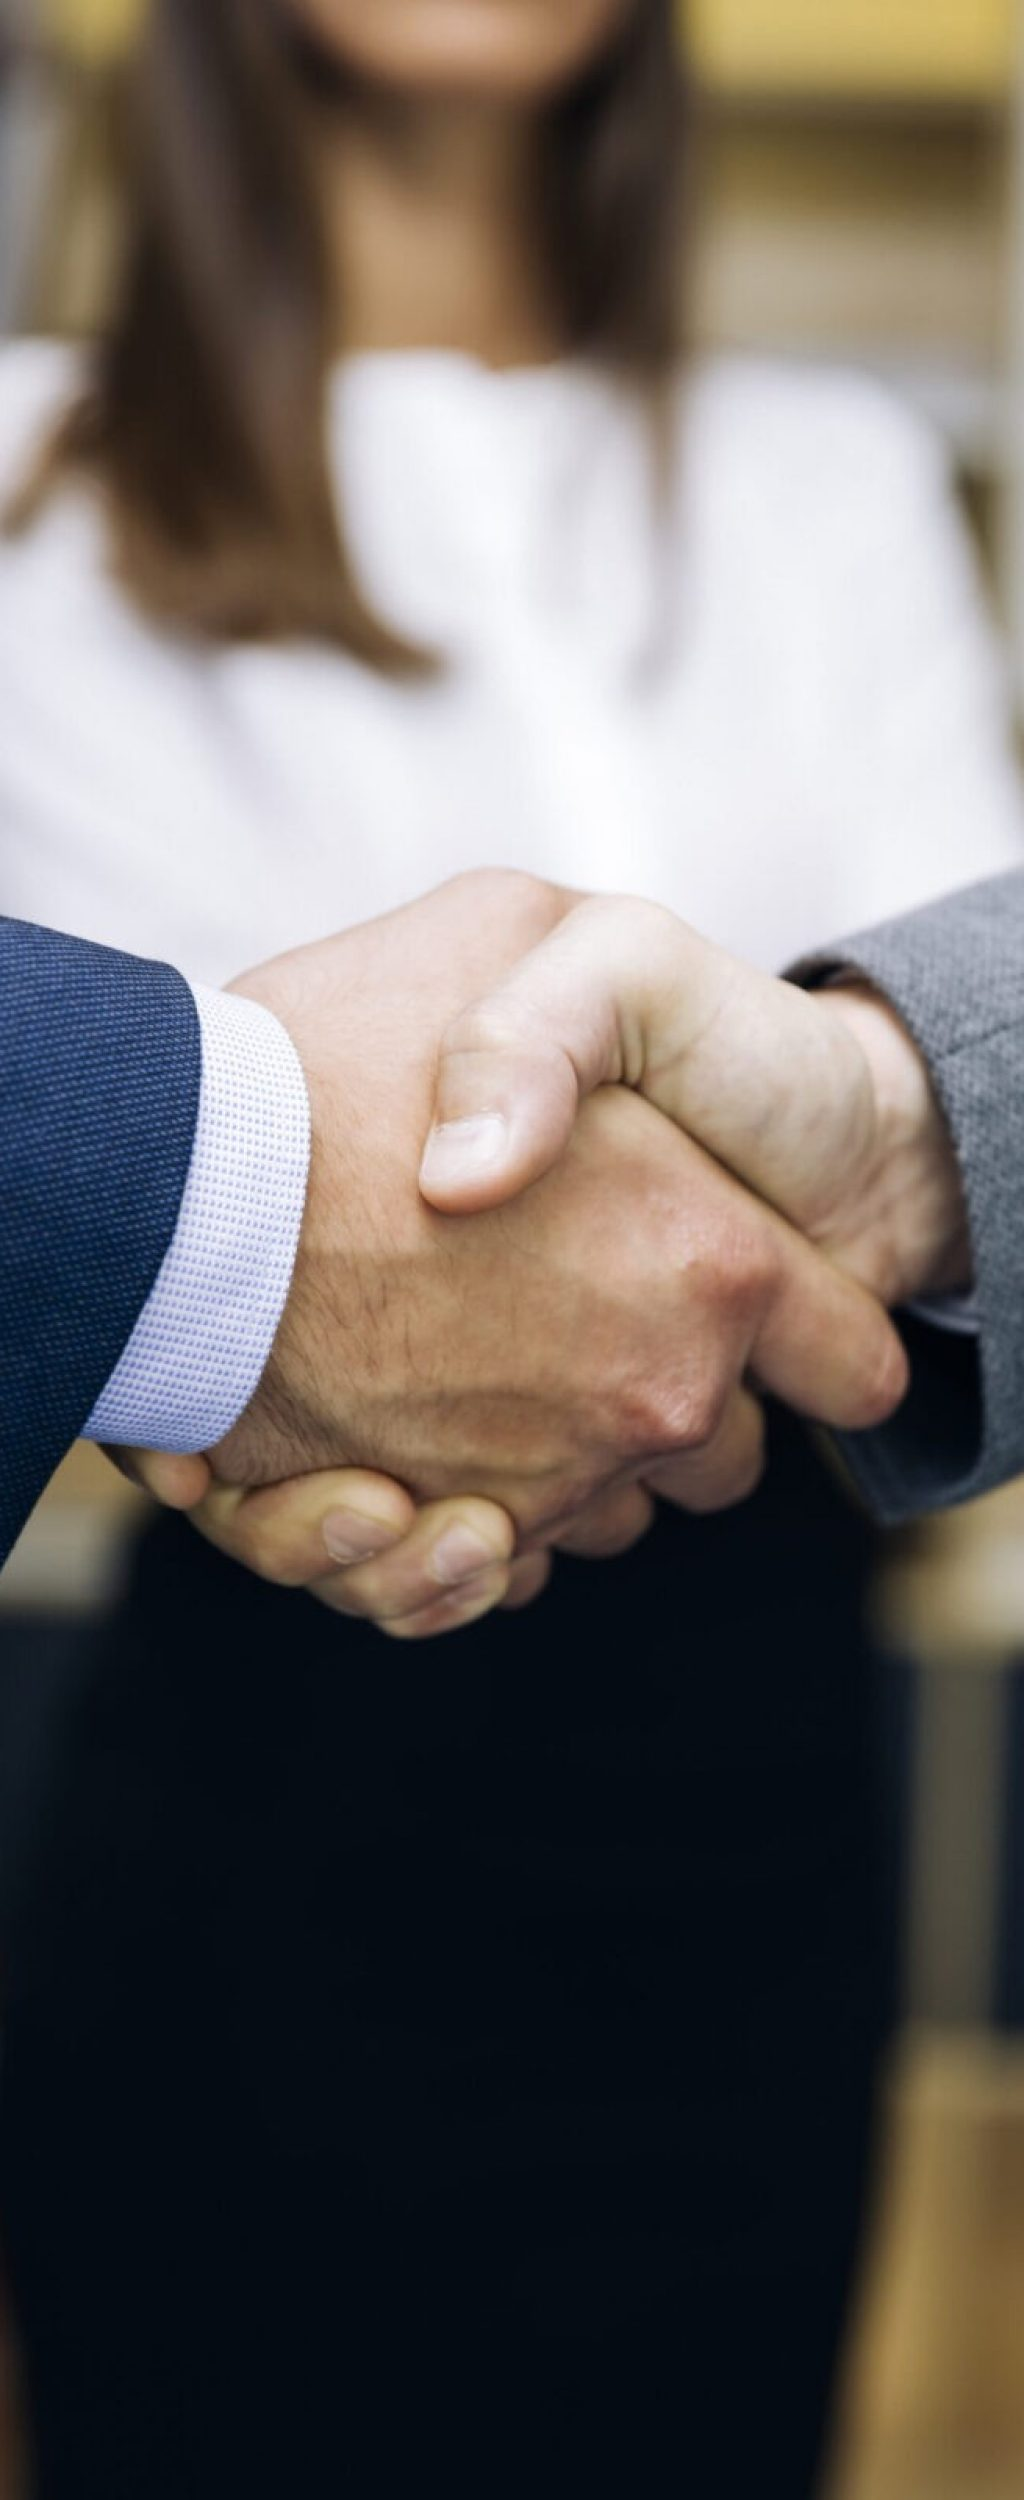 Businessmen handshaking after deal agreement in the office